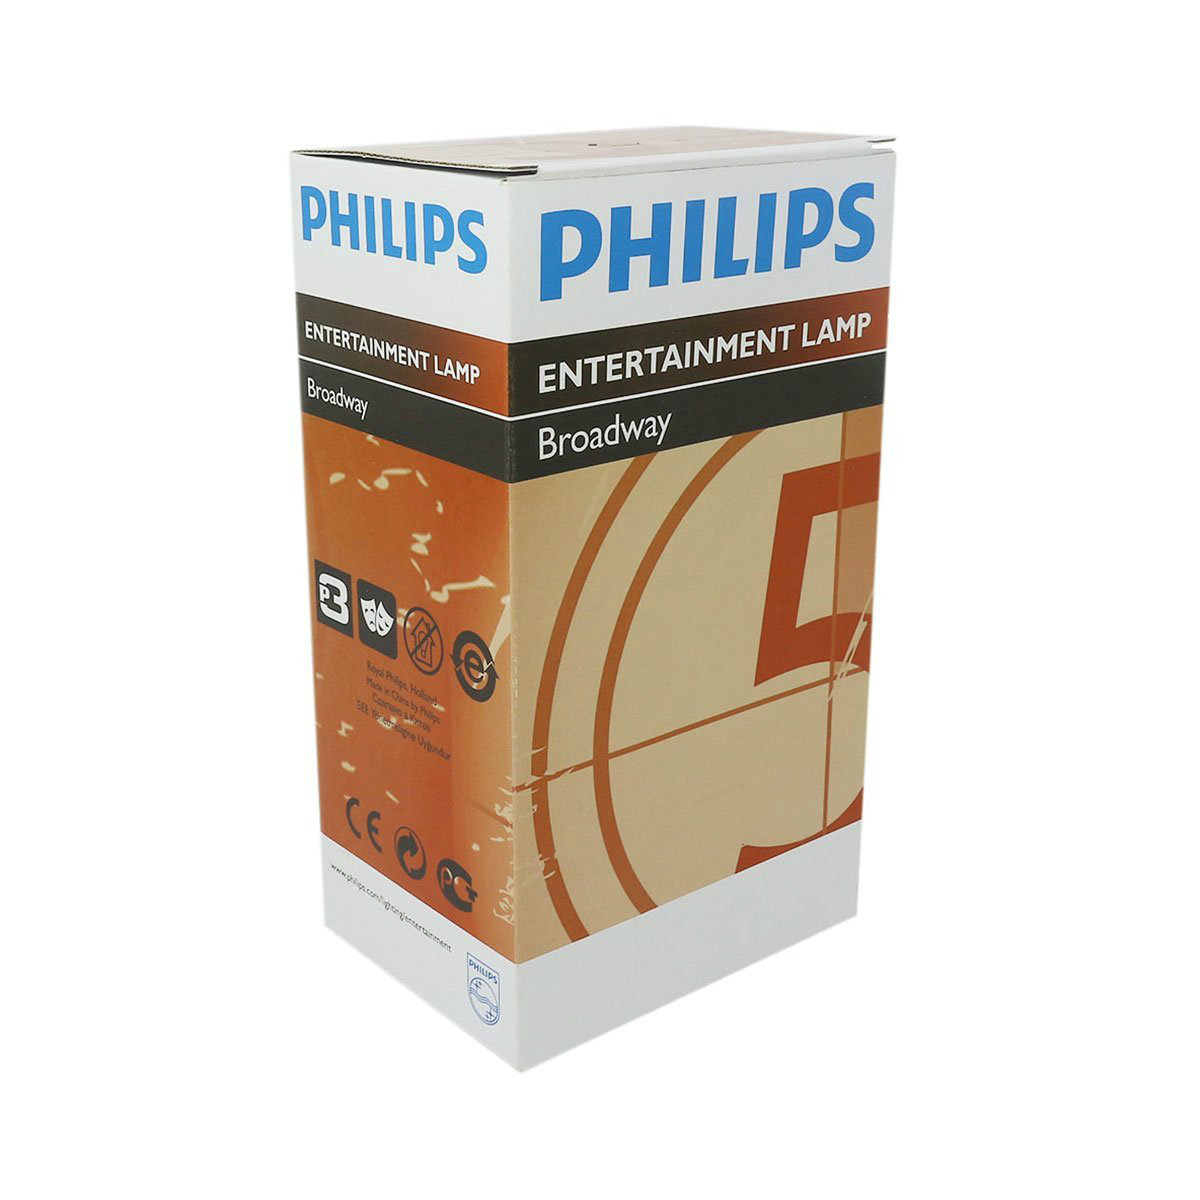 PHILIPS PGJX50 800W 230V 7018G BROADWAY ENTERTAINMENT LAMP